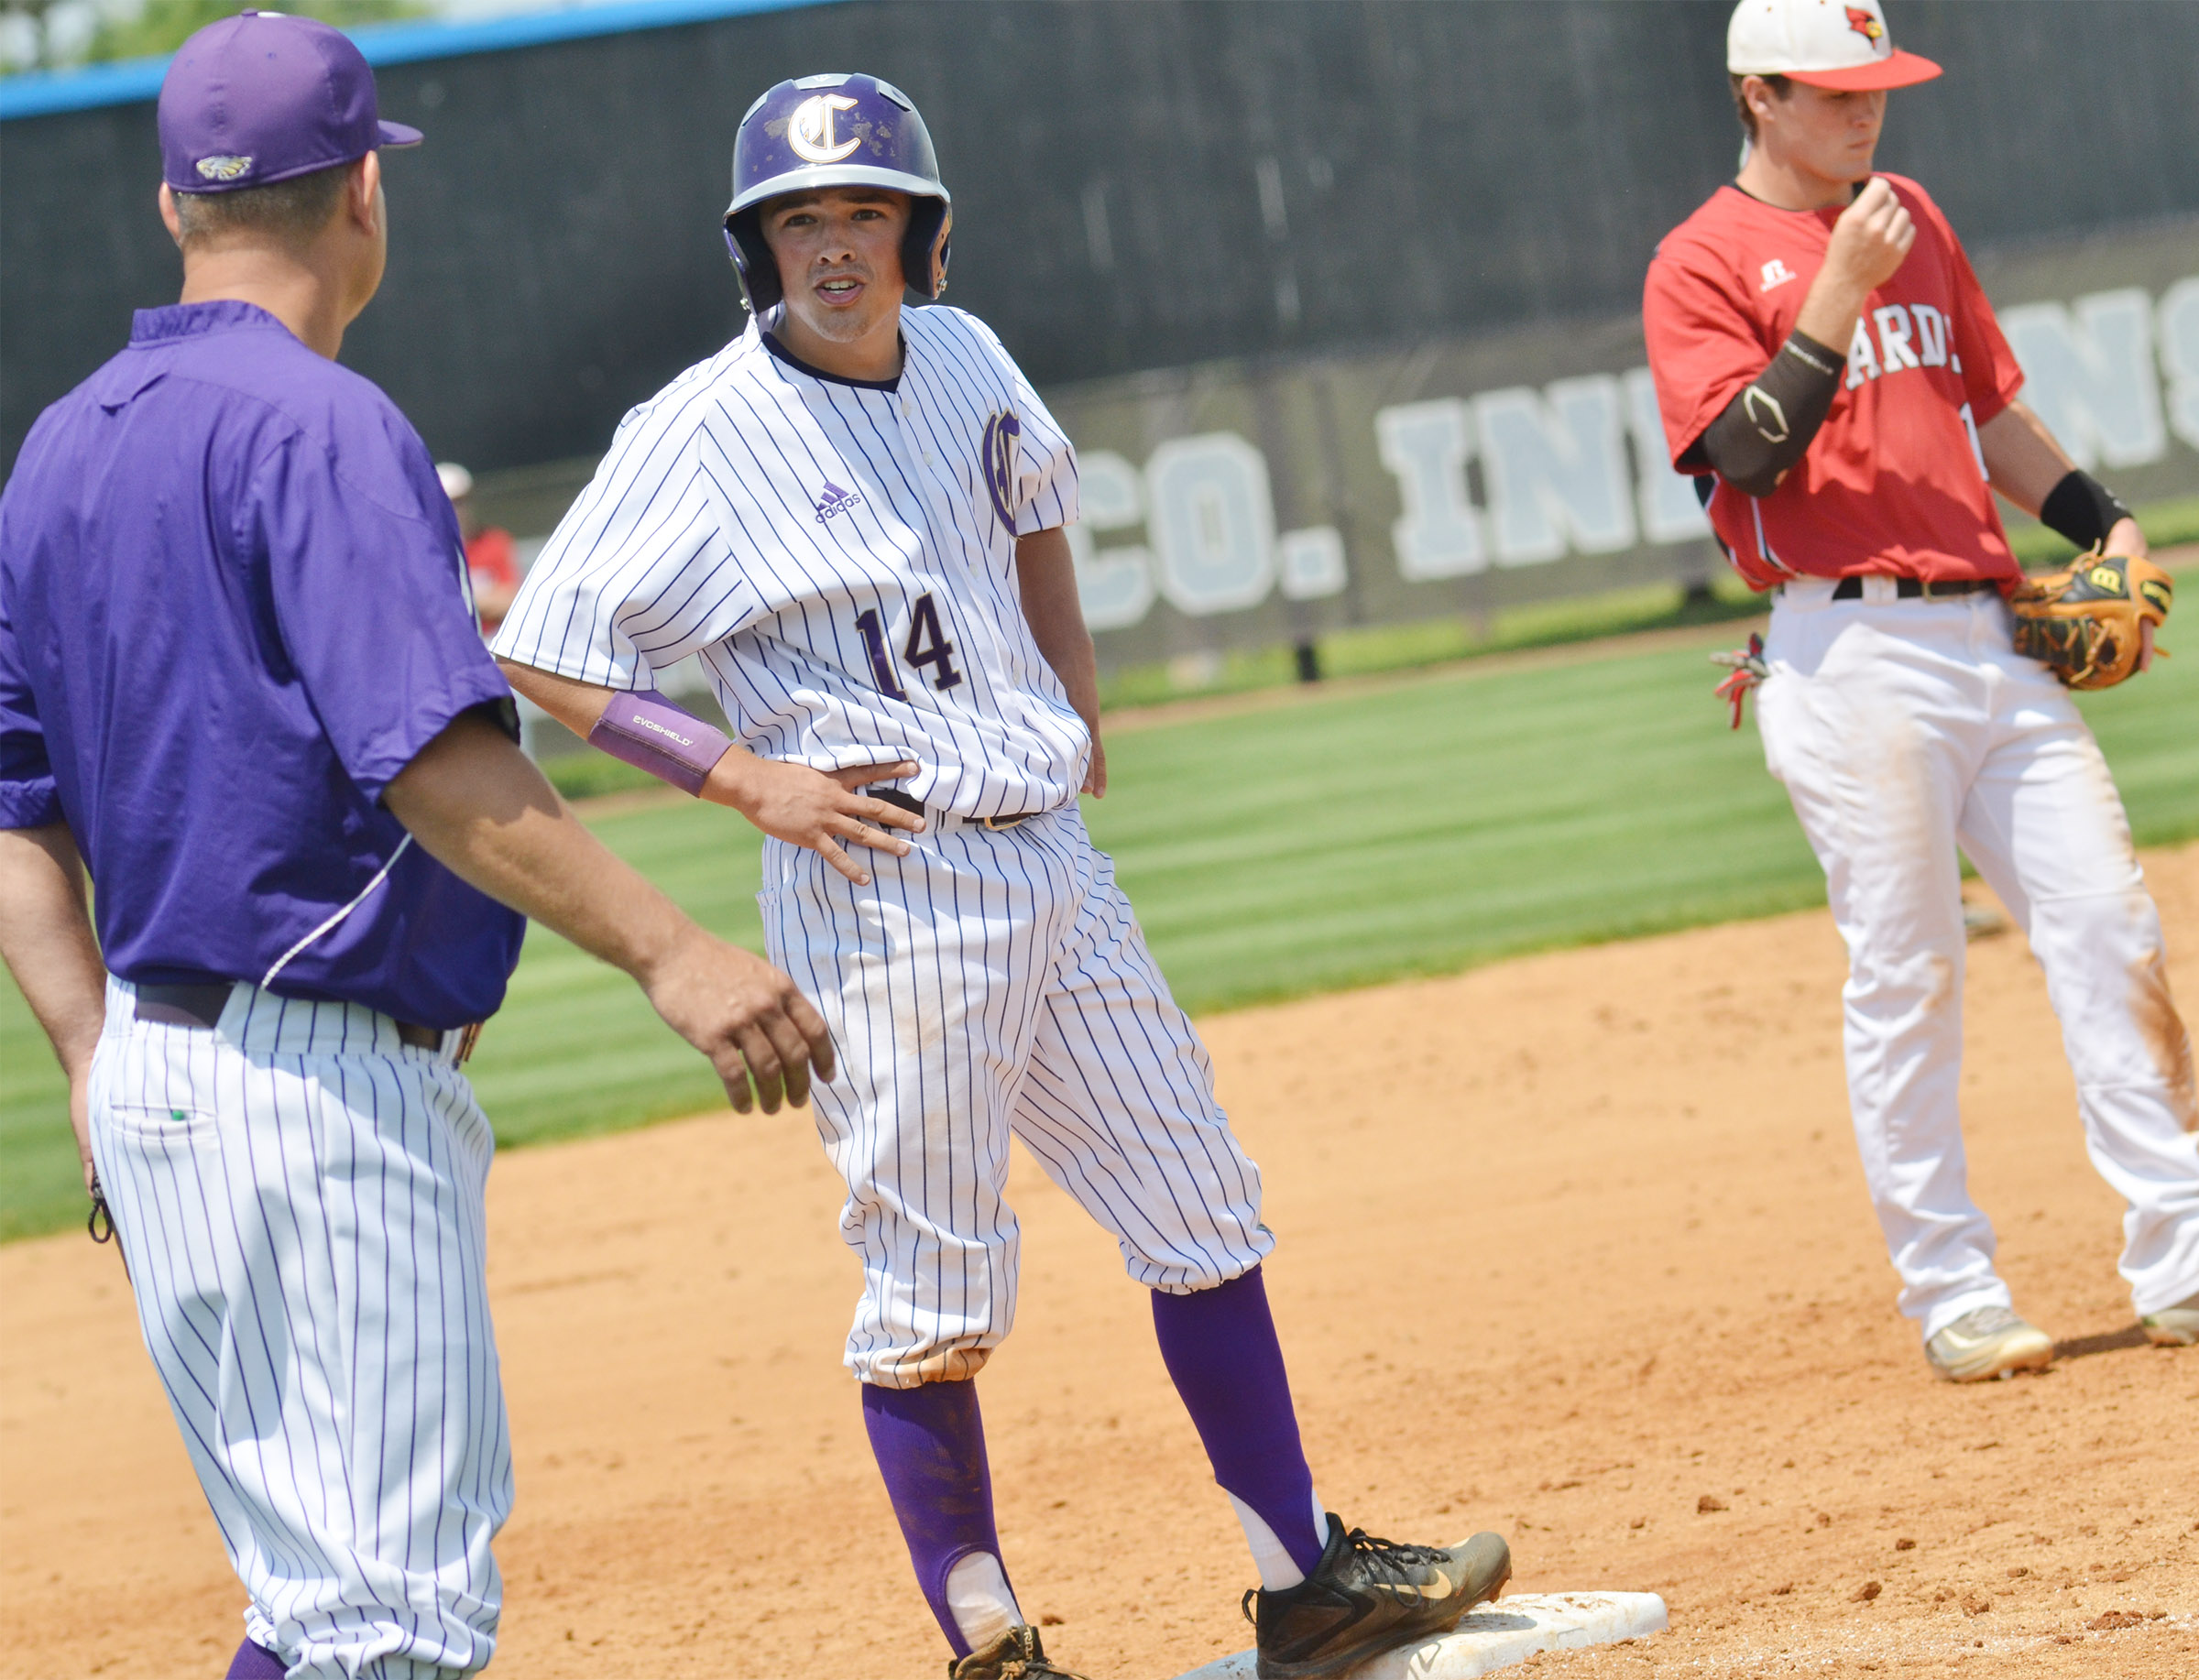 CHS sophomore Ryan Kearney talks to head baseball coach Kirby Smith as he reaches third base.